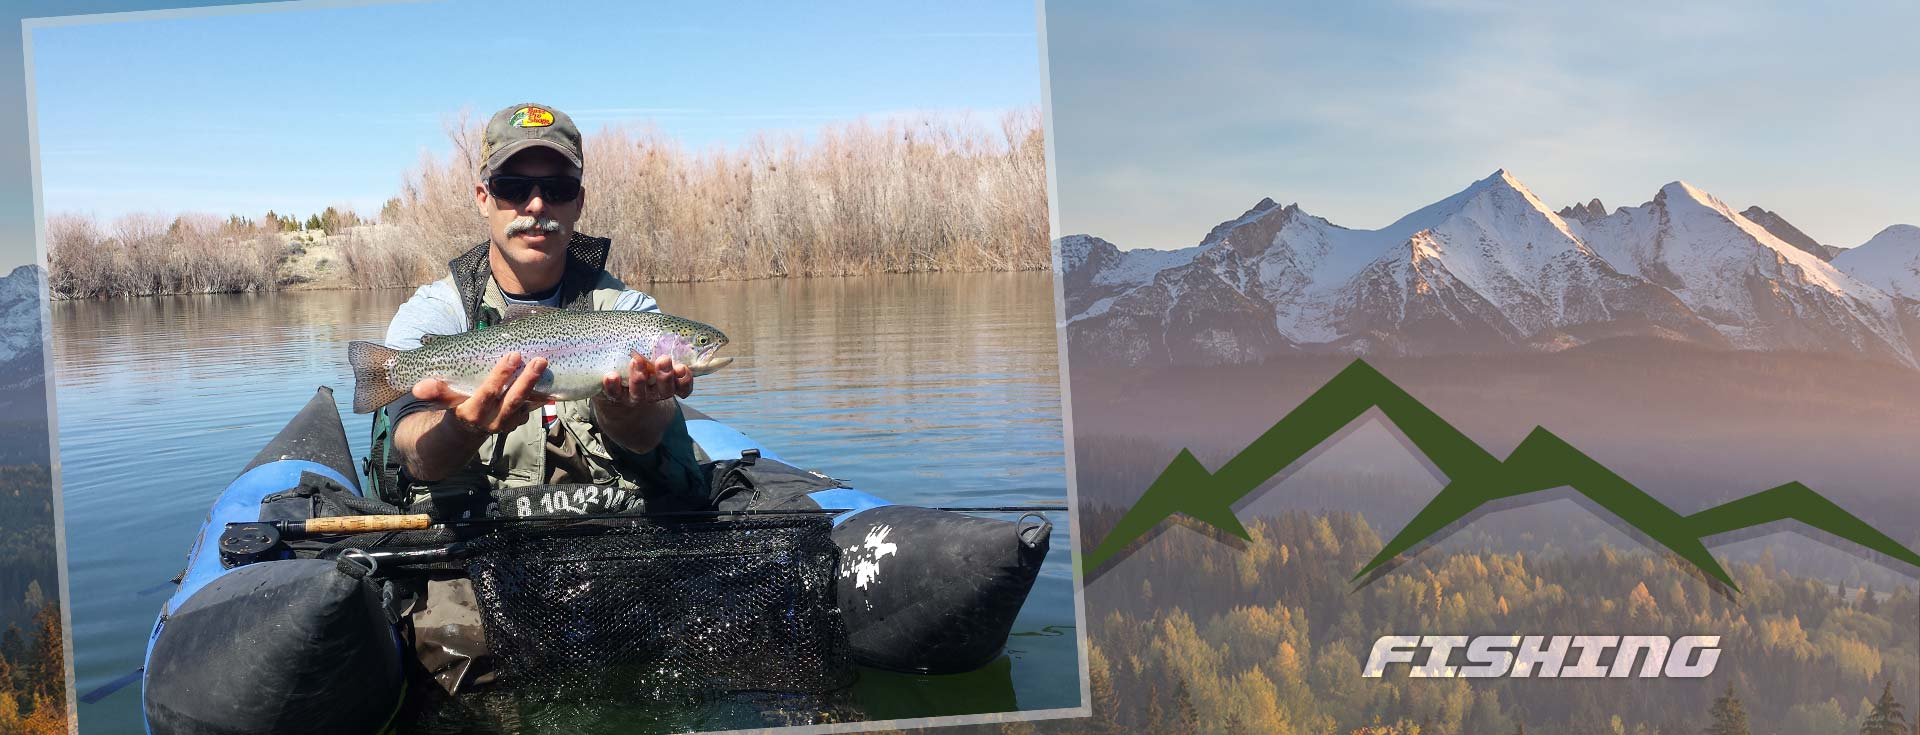 Central Nevada Fly Fishing Trips, Guide Service, Lodging - Private Lake Float for Trout